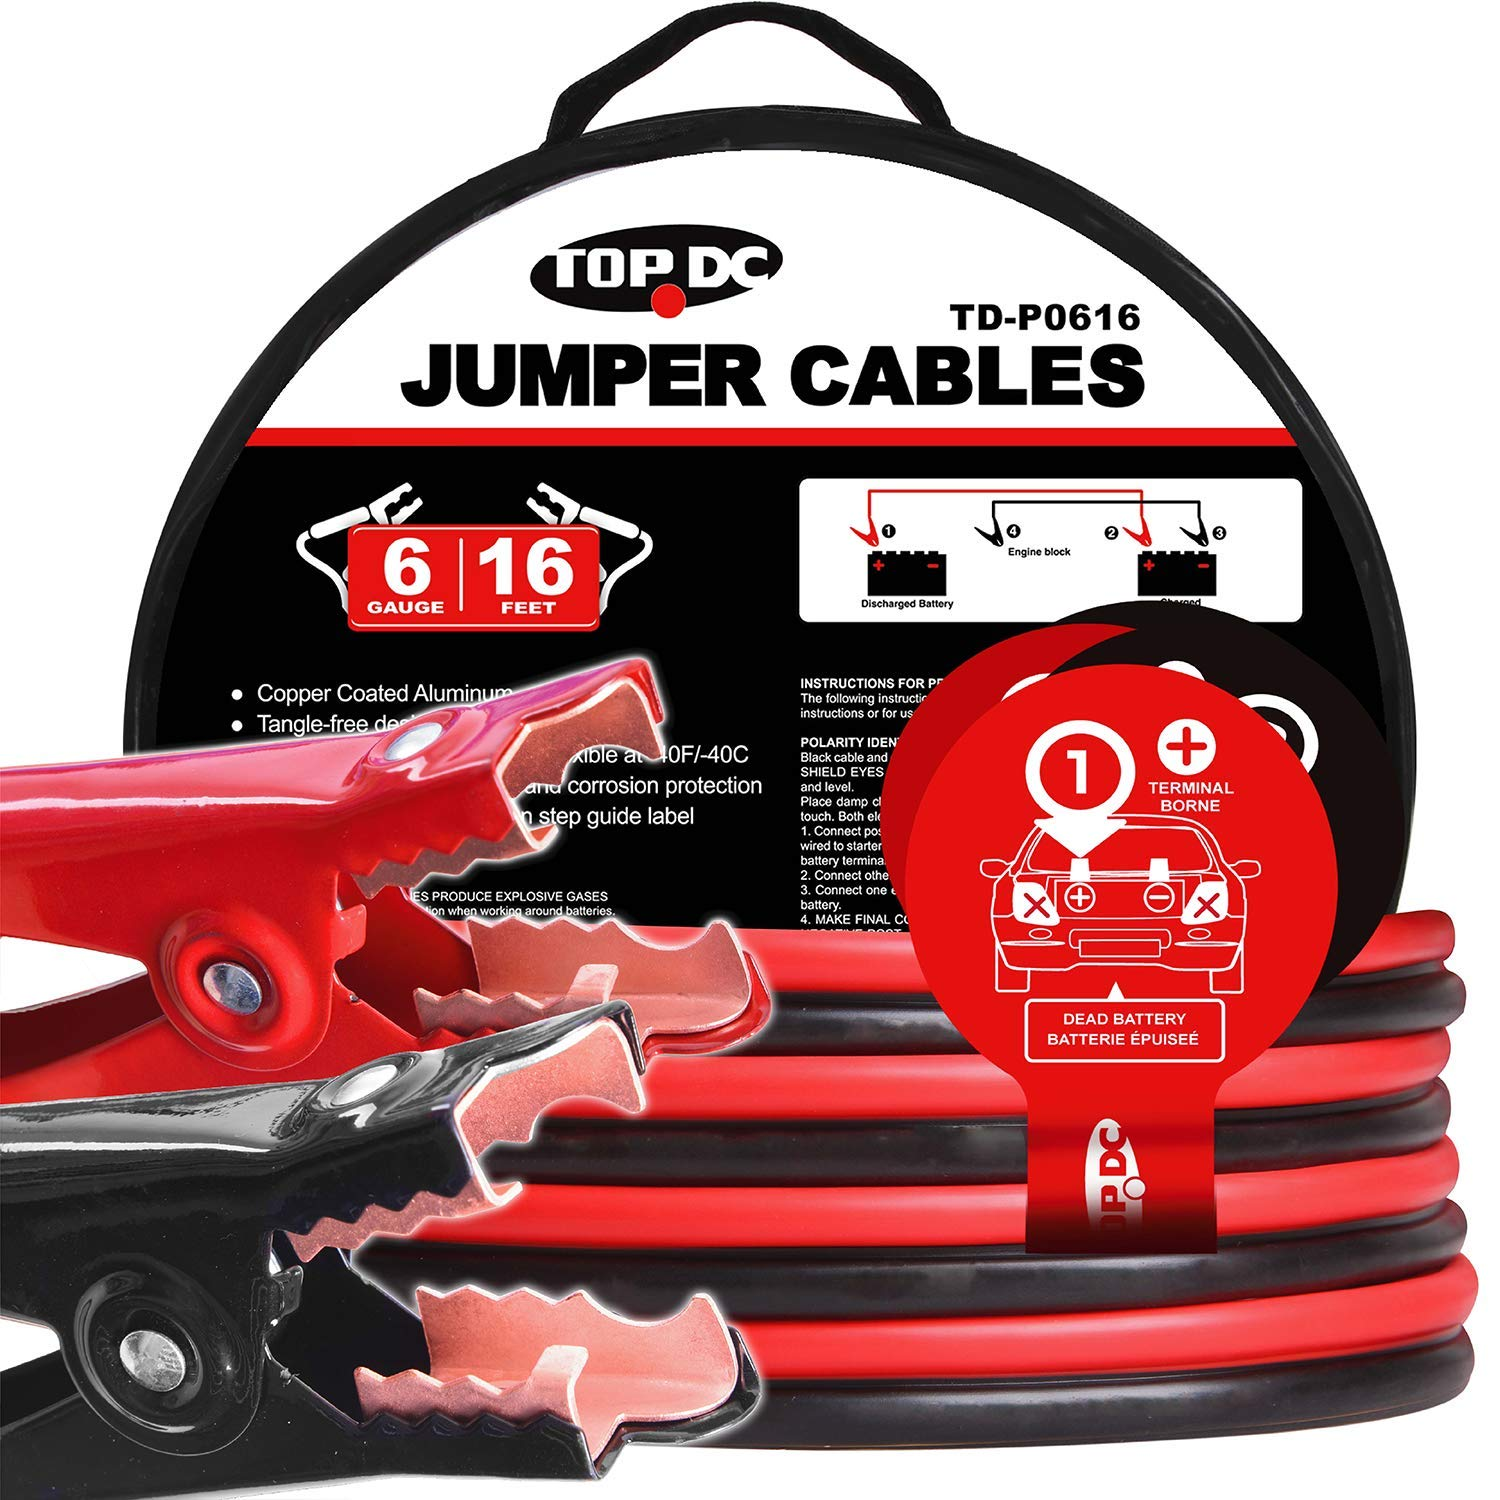 TOPDC Jumper Cables 6 Gauge 16 Feet Heavy Duty Booster Cables with Carry Bag (6AWG x 16Ft) by TOPDC